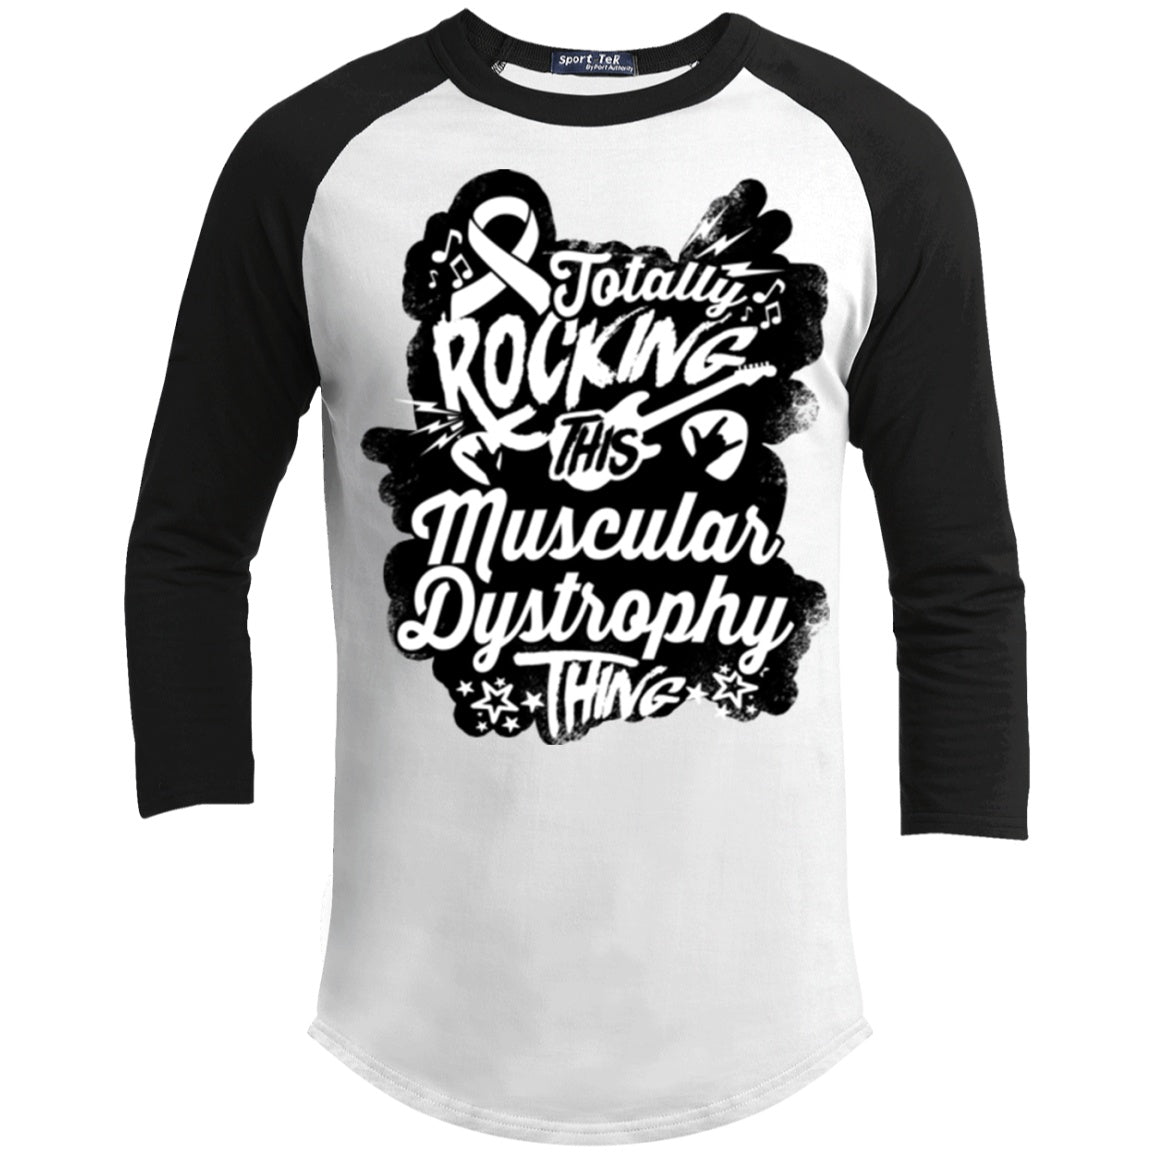 Rocking Muscular Dystrophy Baseball Shirt - The Unchargeables